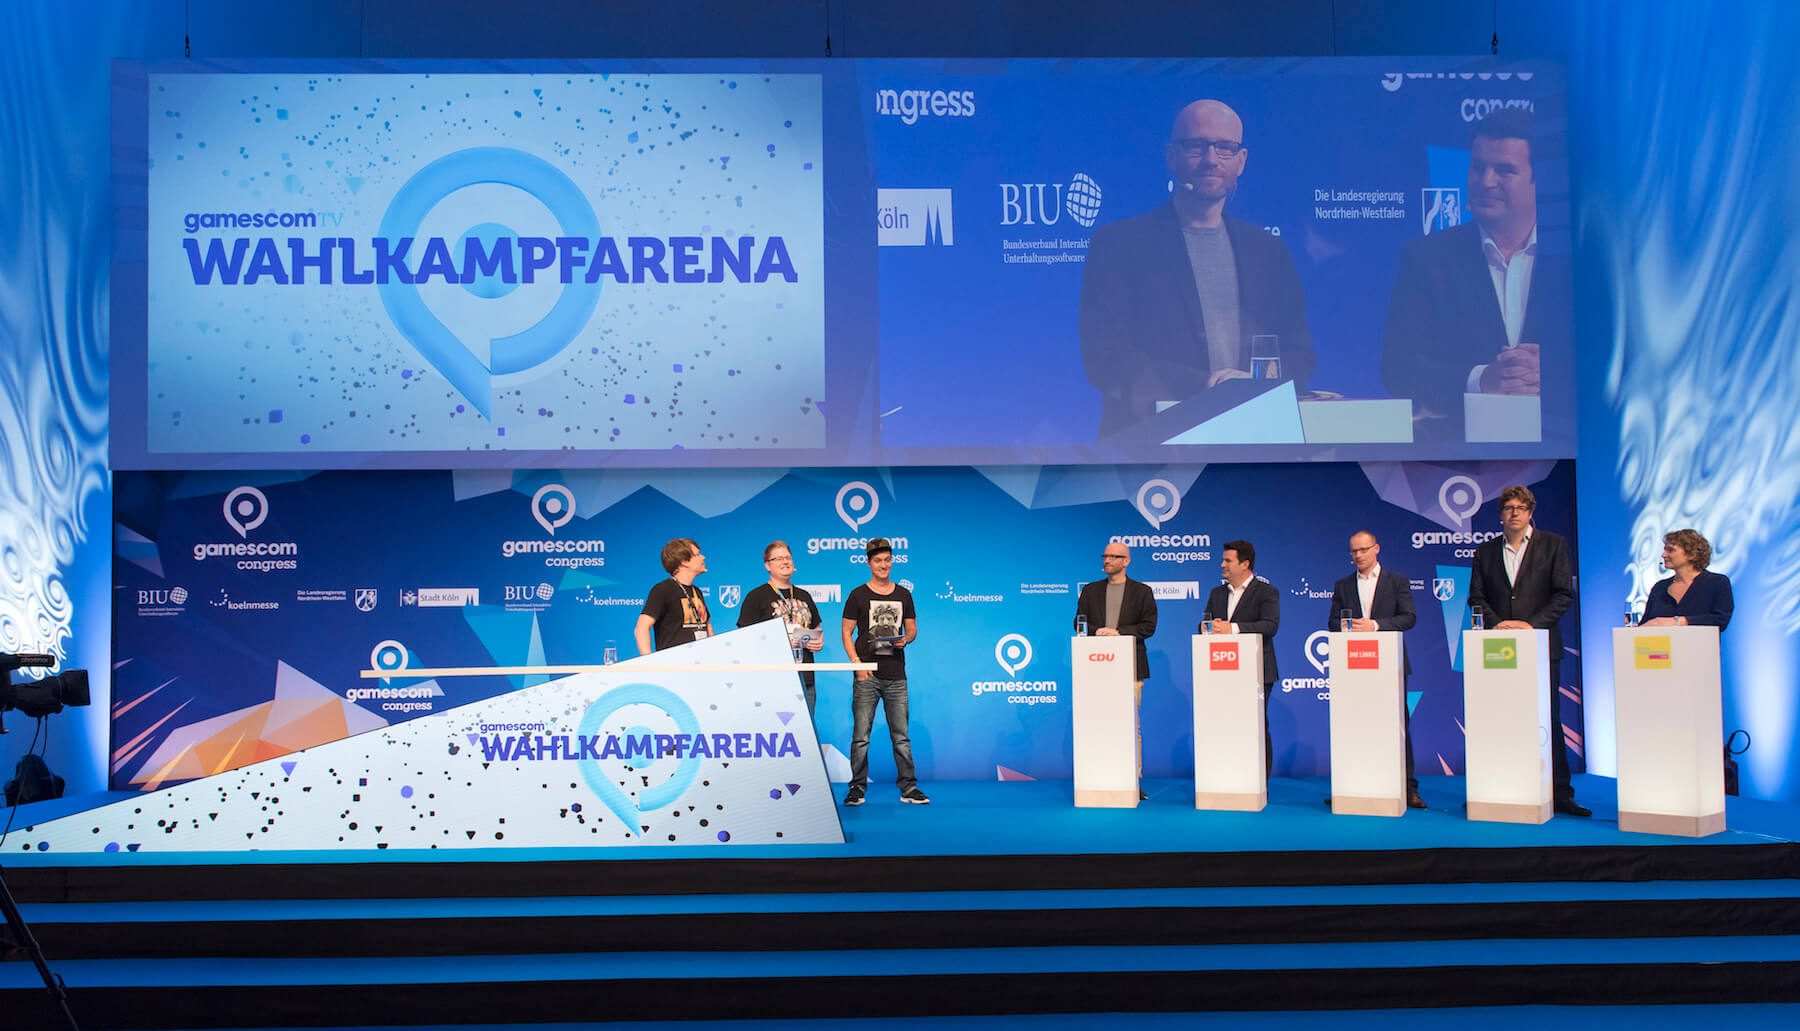 Gamescom 2017: Eröffnung des gamescom congress, Wahlkampfarena, v.l.n.r. Colin Gäbel (Rocket Beans Entertainment), Peter Smits (PietSmiet), Florian Mundt LeFloid), Dr. Peter Tauber (CDU Generalsekretär), Hubertus Heil (SPD Generalsekretär), Matthias Höhn (DIE LINKE Bundesgeschäftsführer), Michael Kellner (Bündnis 90/Die Grünen Politischer Bundesgeschäftsführer), Nicola Beer (FDP Generalsekretärin), Konrad-Adenauer-Saal, Congress Centrum Nord (Bildrechte: Koelnmesse GmbH, Oliver Wachenfeld)